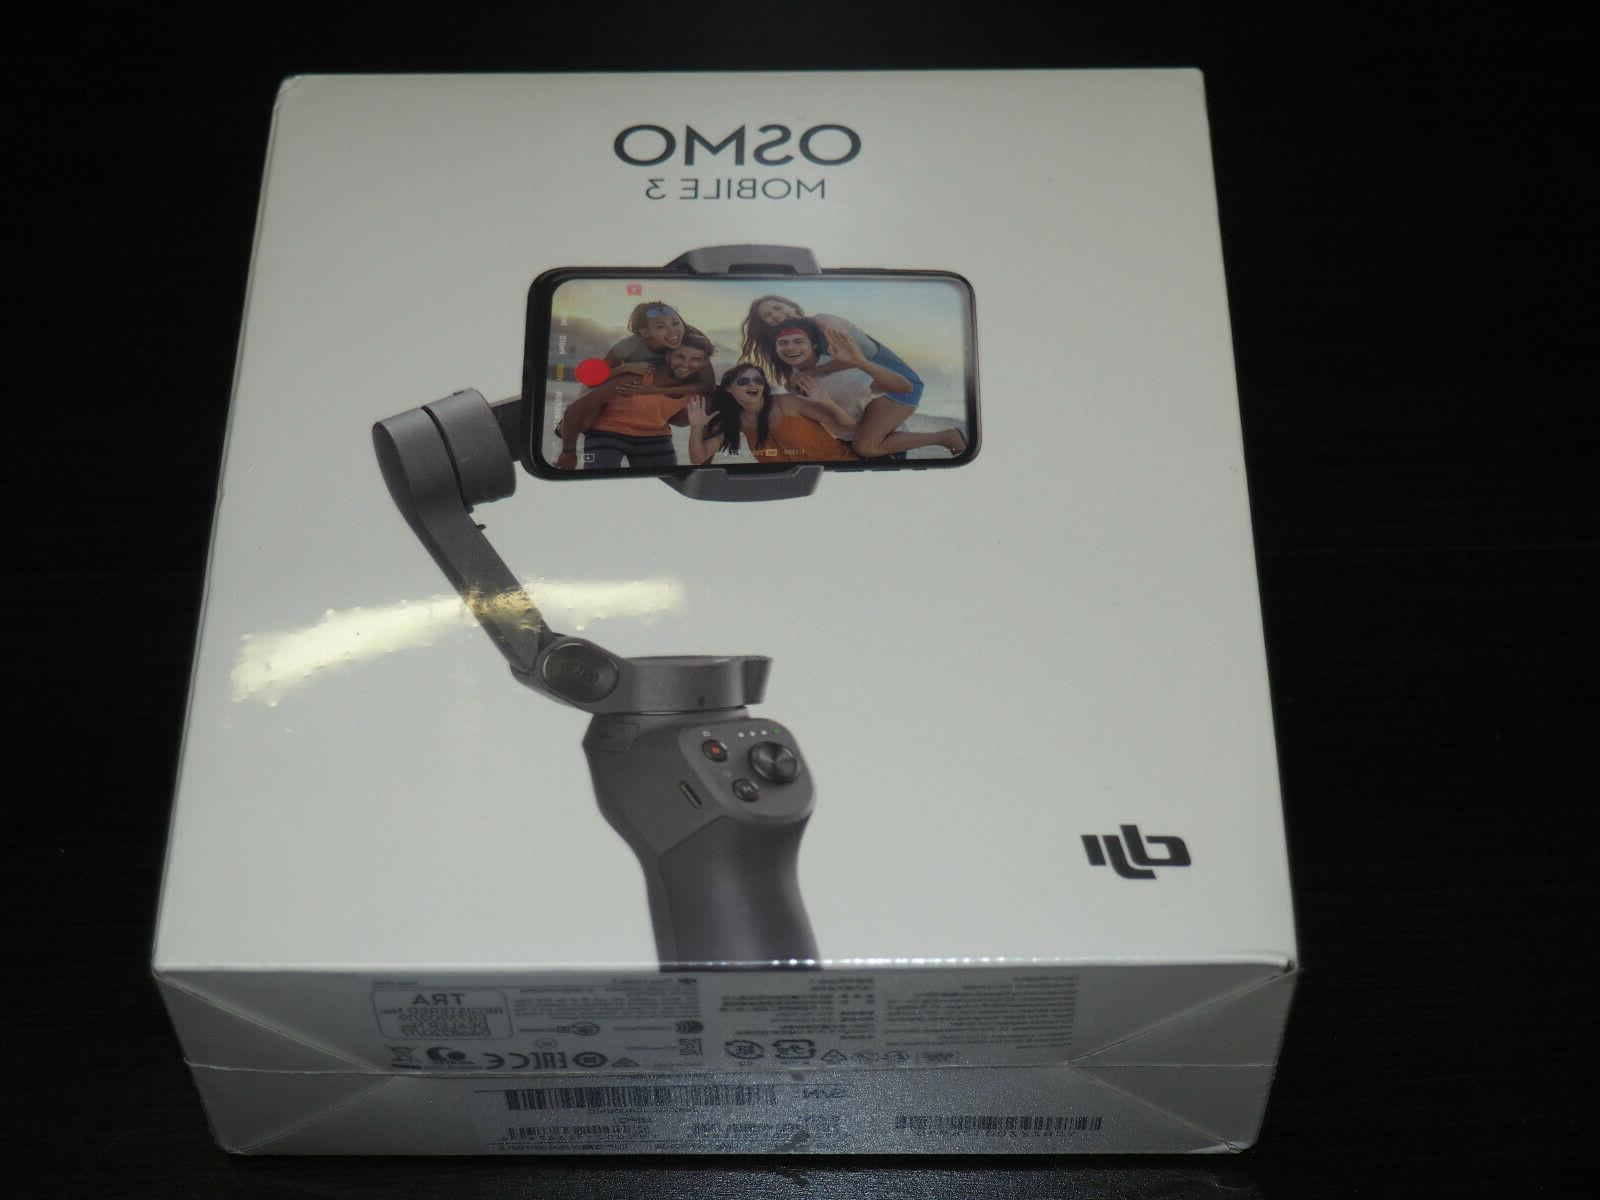 osmo mobile 3 gimbal stabilizer